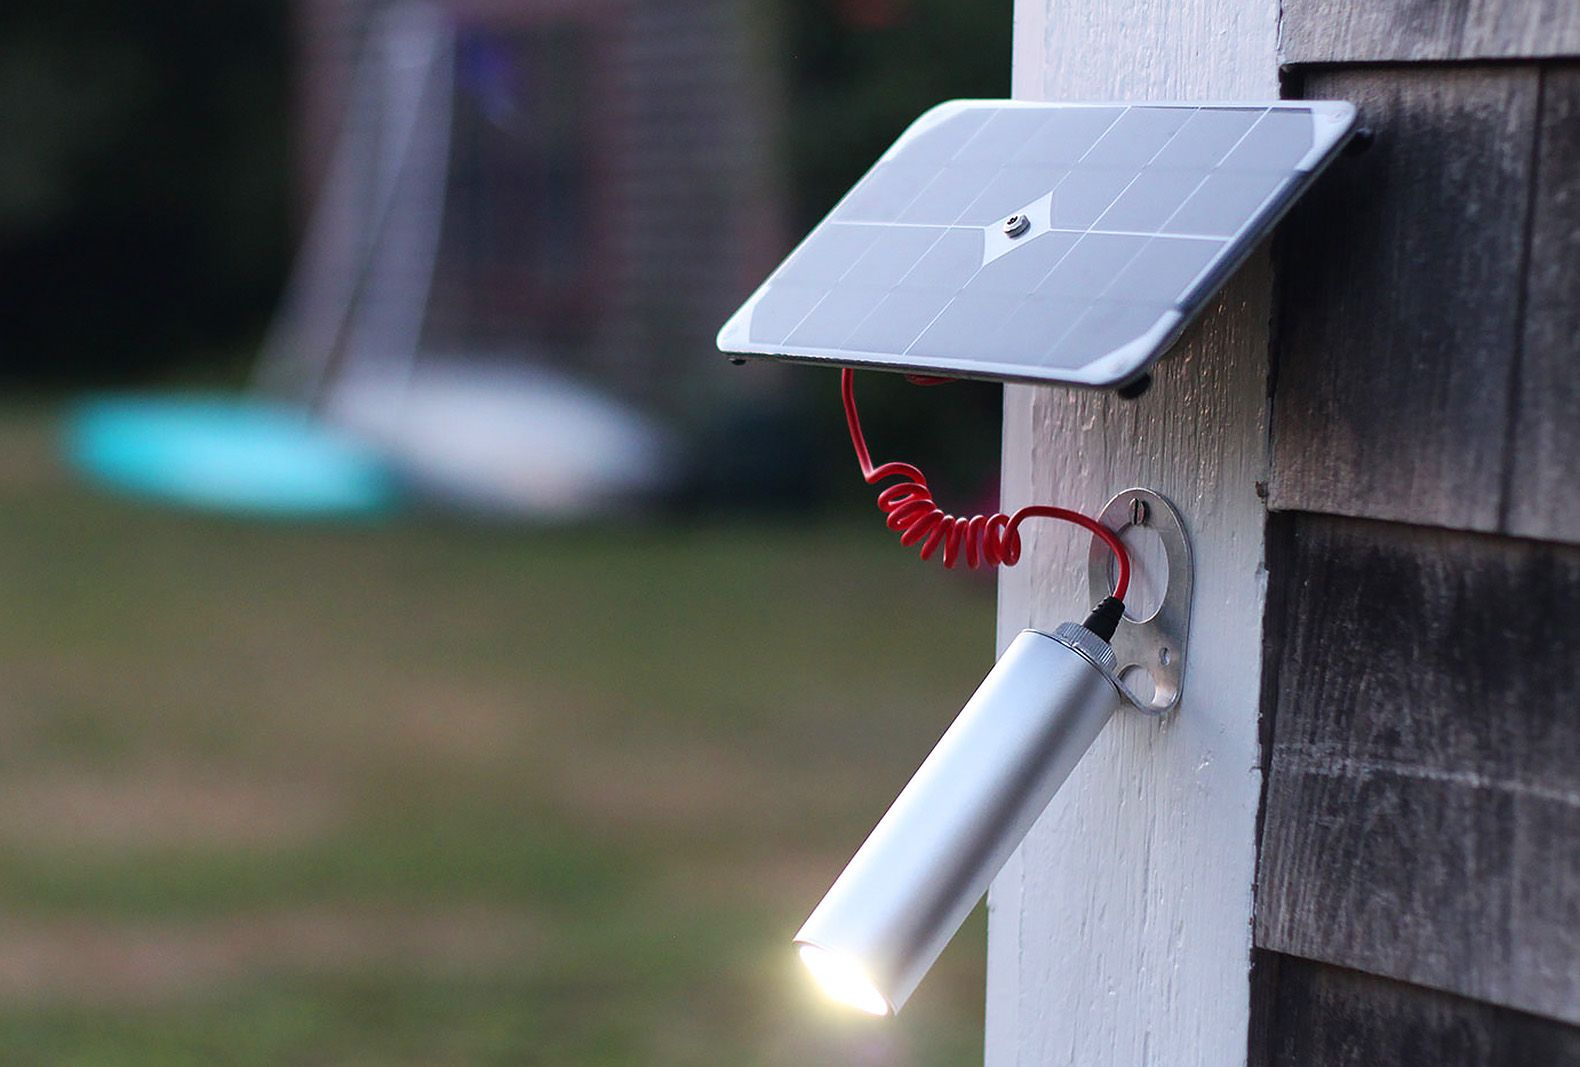 Elegant solarpowered Shine light delivers 30+ hours of